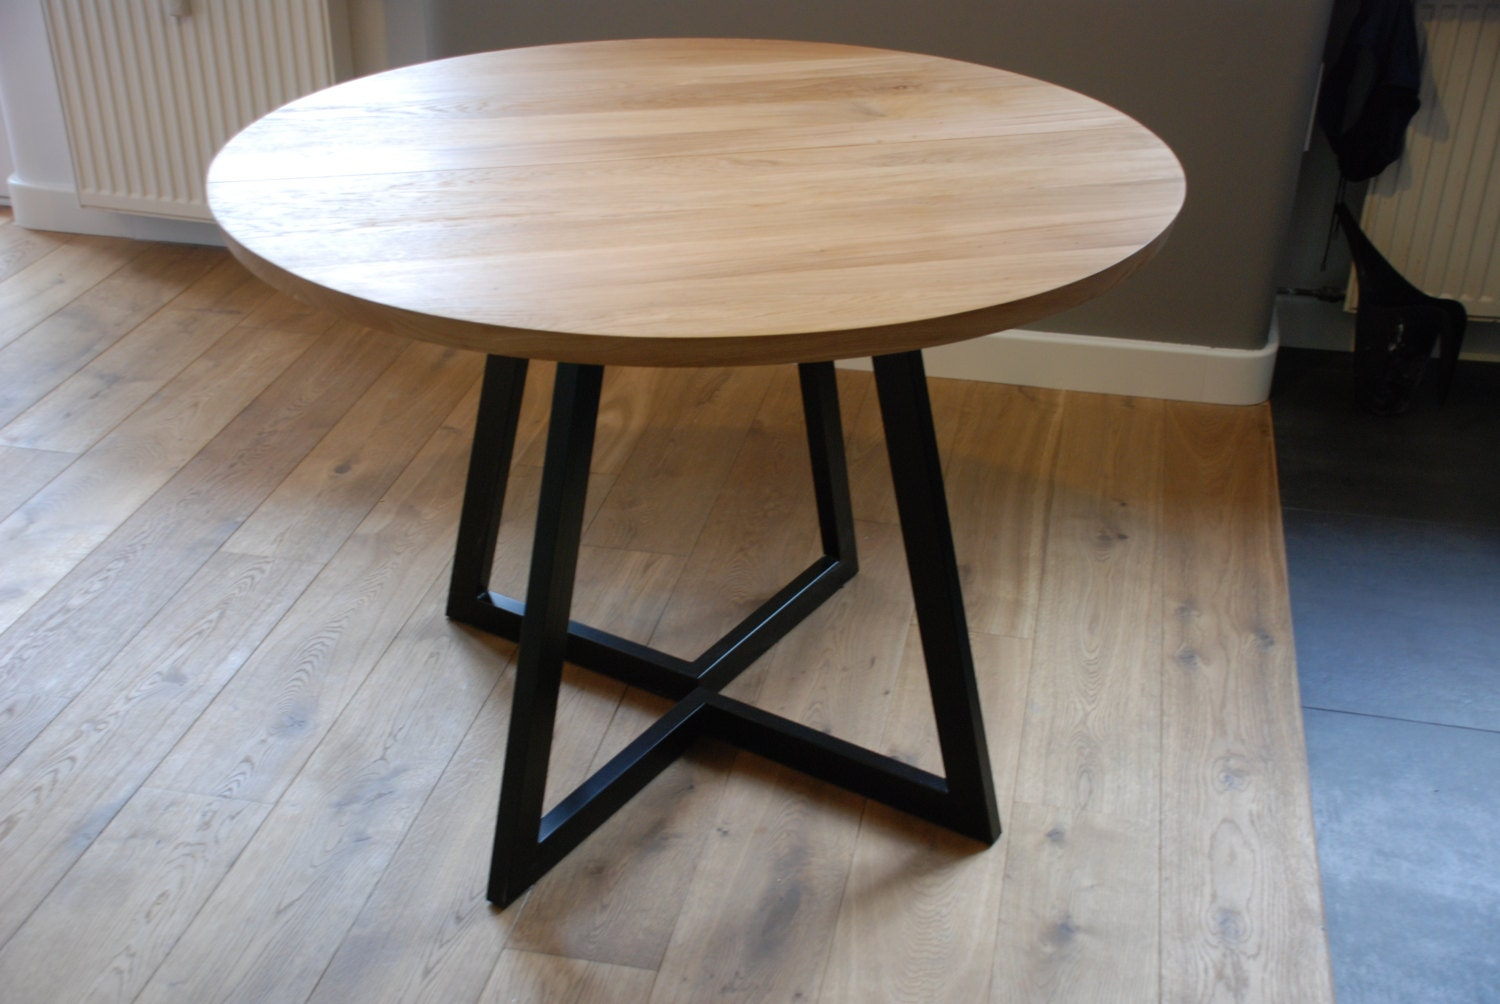 Extendable round table modern design steel and timber